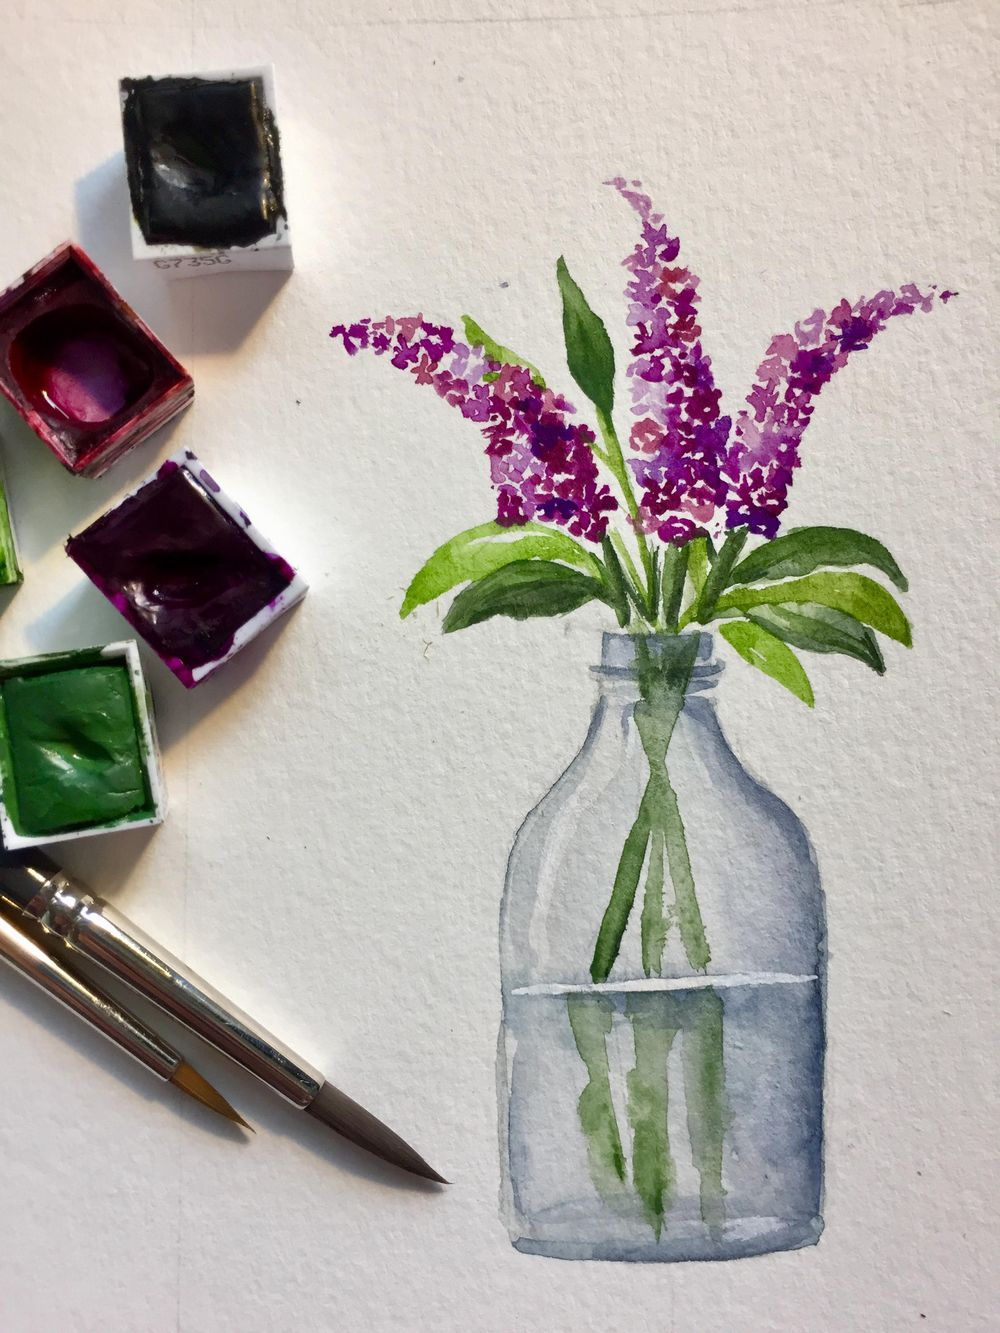 Watercolor Flowers - image 1 - student project